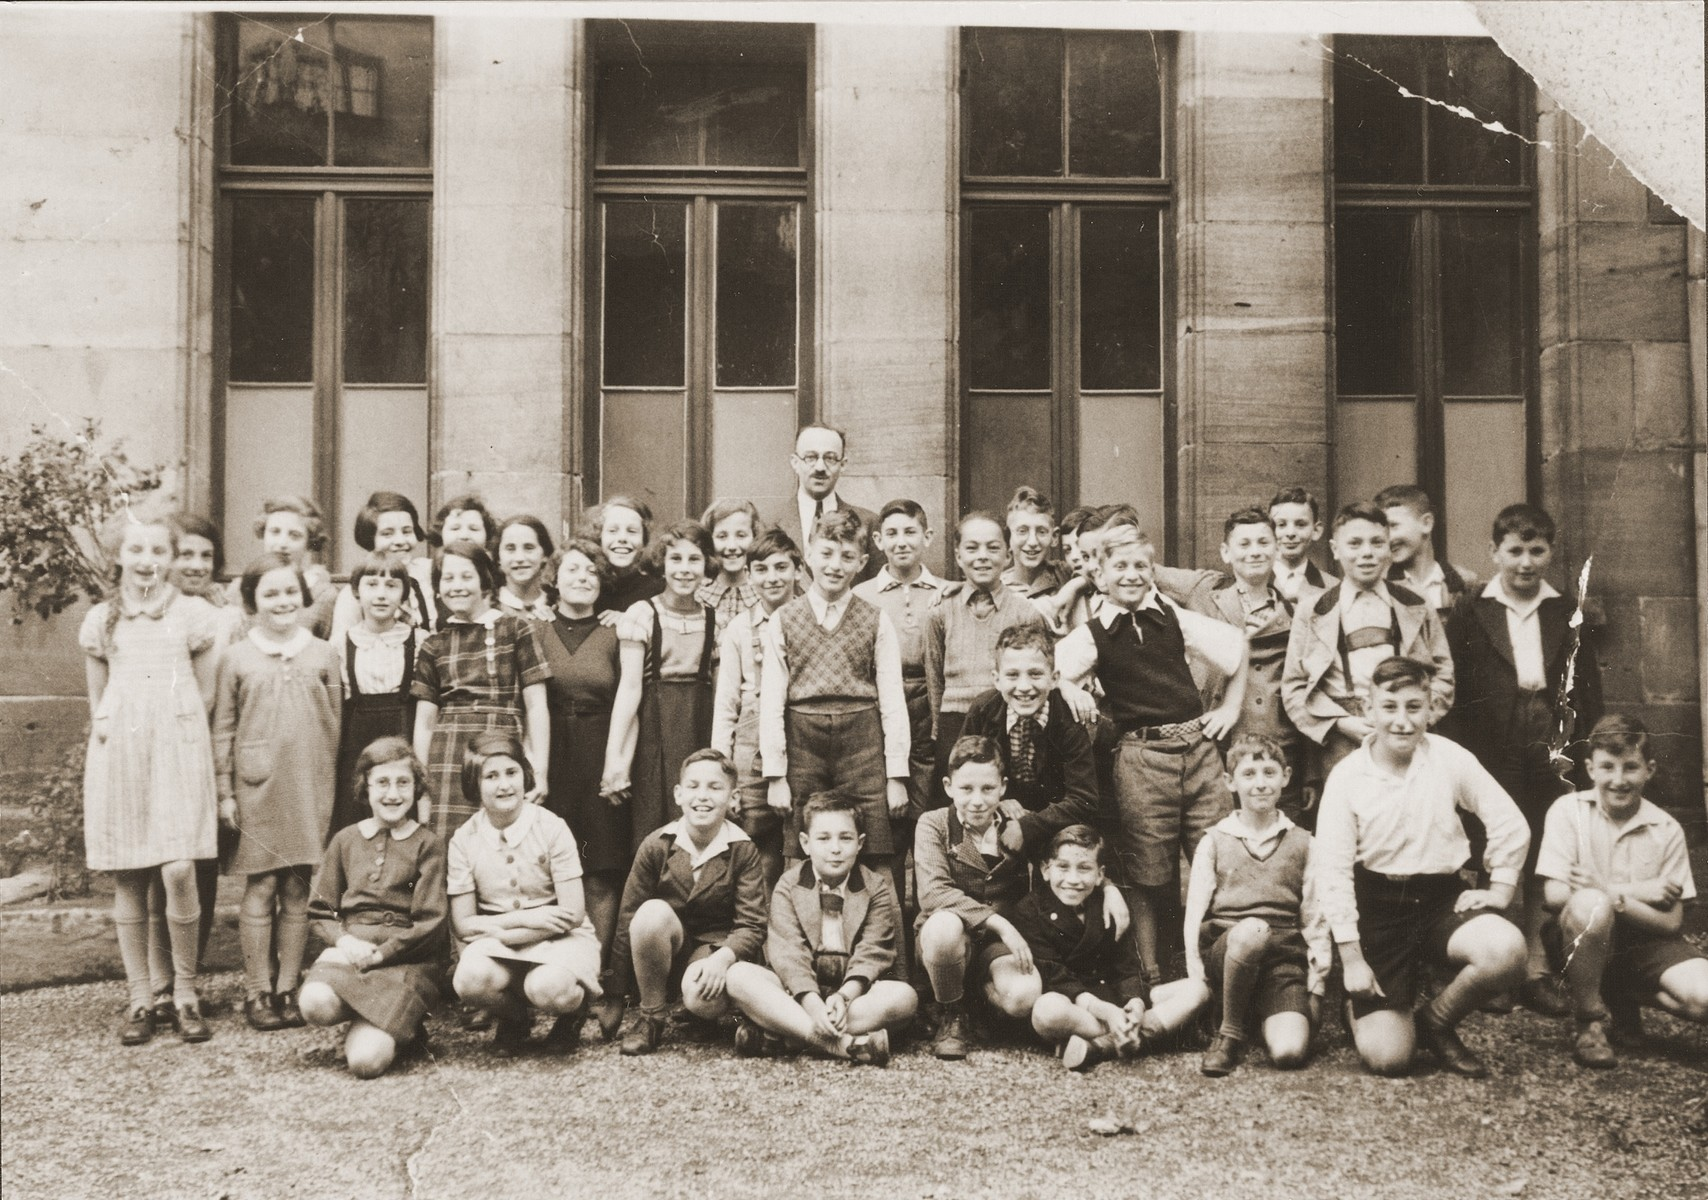 Group portrait of students at the Juedische Realschule in Fuerth with their teacher, Benno Heinemann.